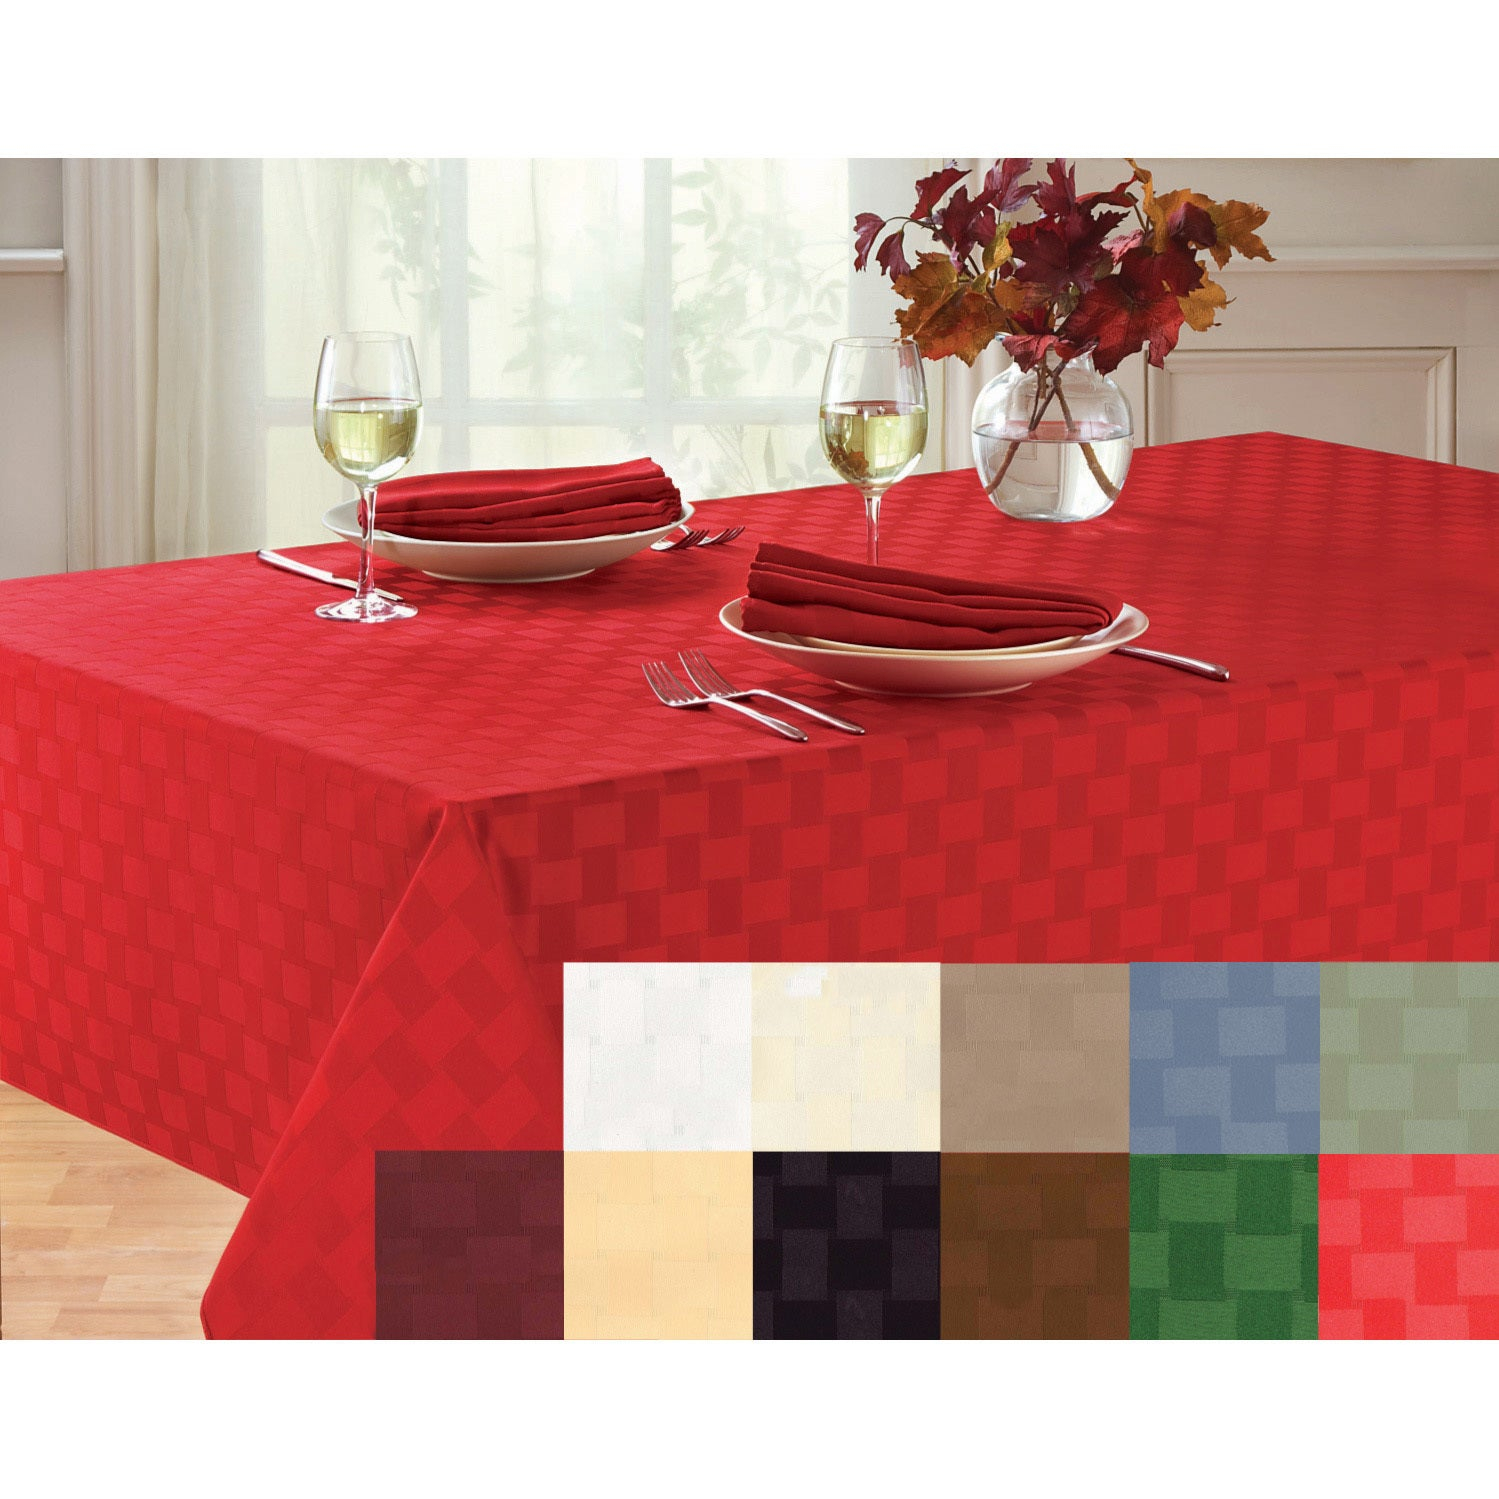 Shop Reflections Microfiber Tablecloth   Free Shipping On Orders Over $45    Overstock.com   3031937